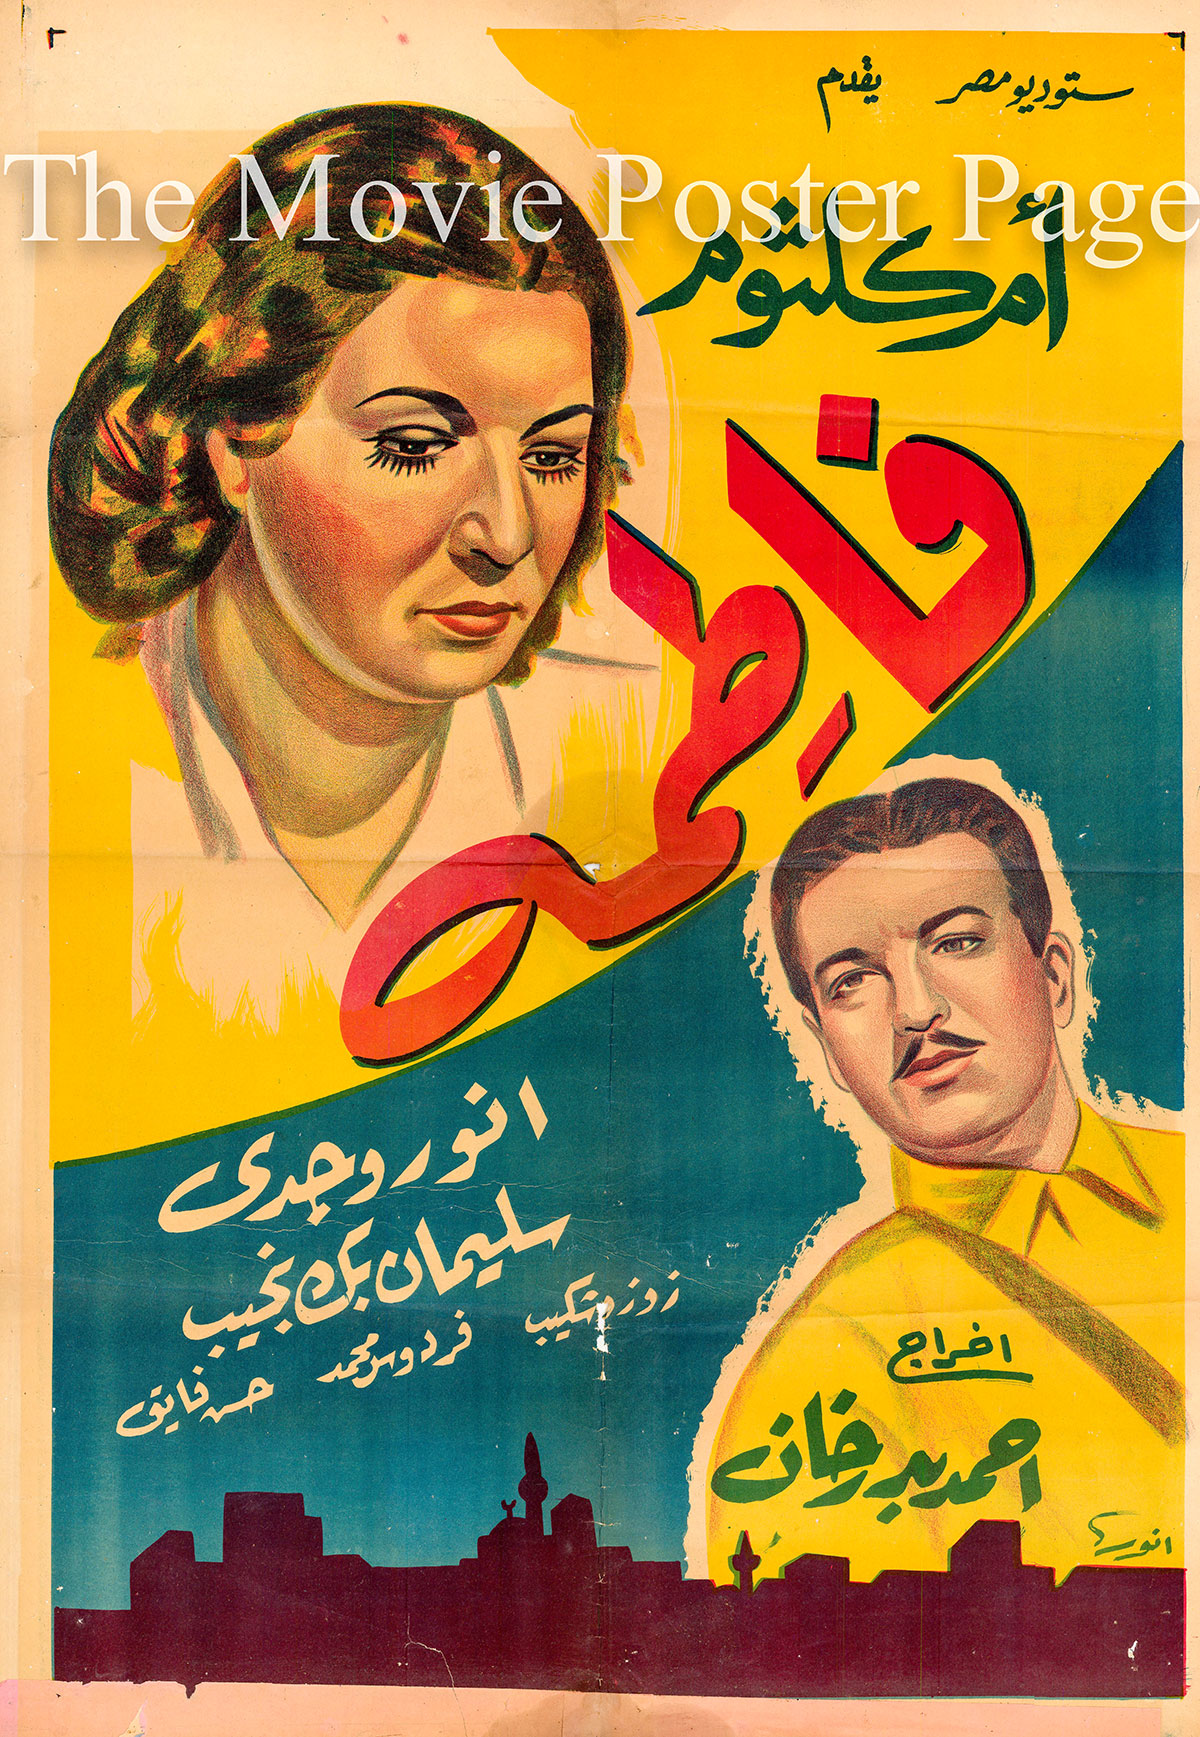 Pictured is an Egyptian promotional poster for the 1947 Ahmed Badrakhan film Fatmah, starring Om Kolsum.